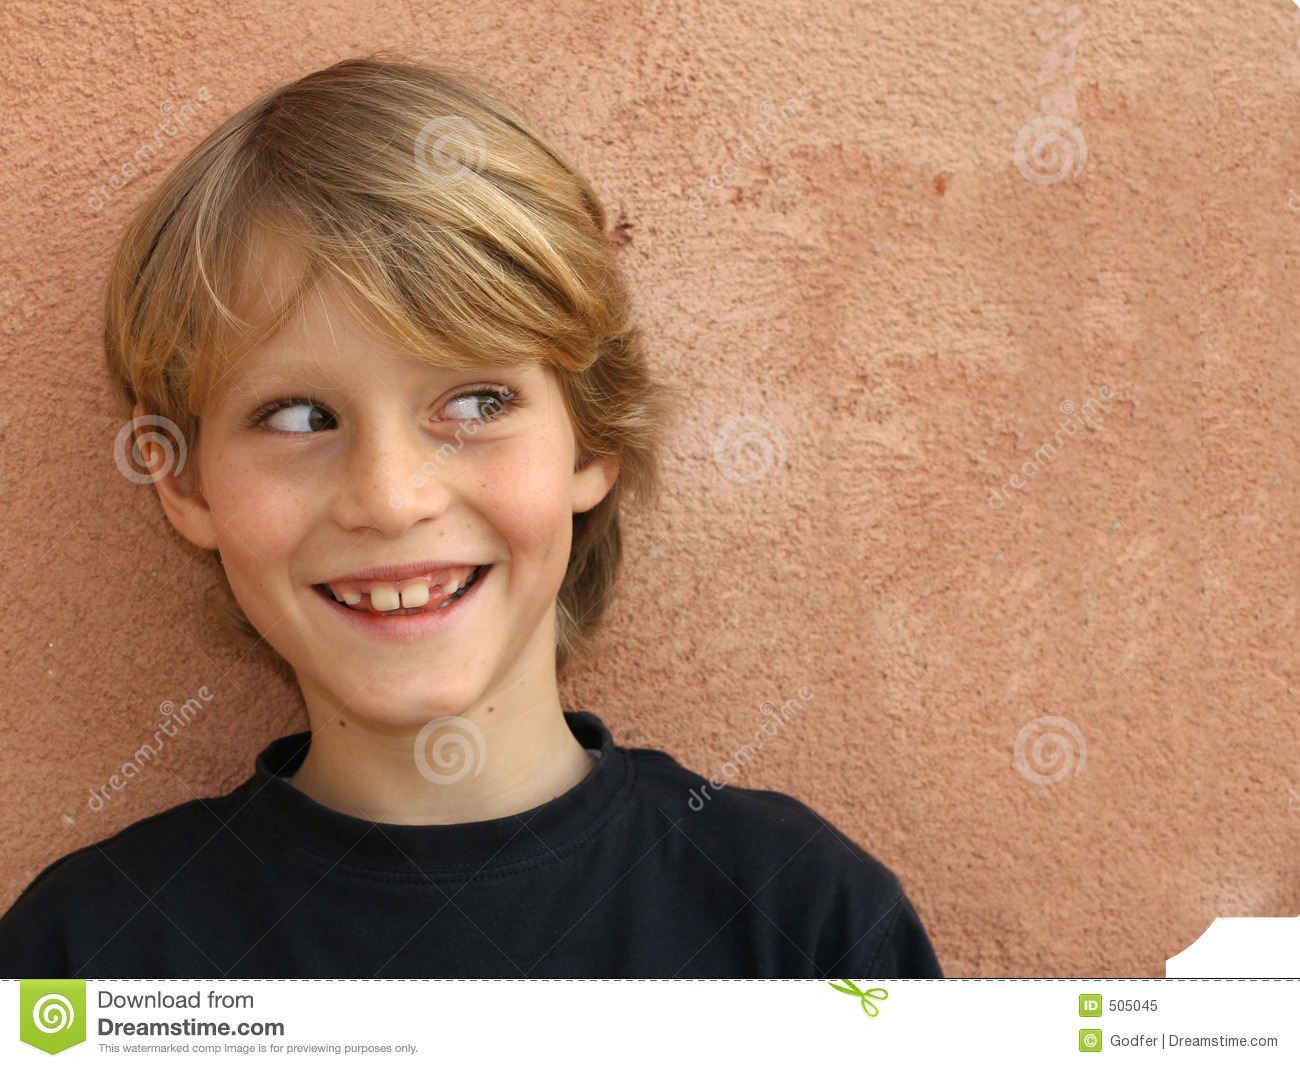 Cheeky child face stock image. Image of smile, young ...